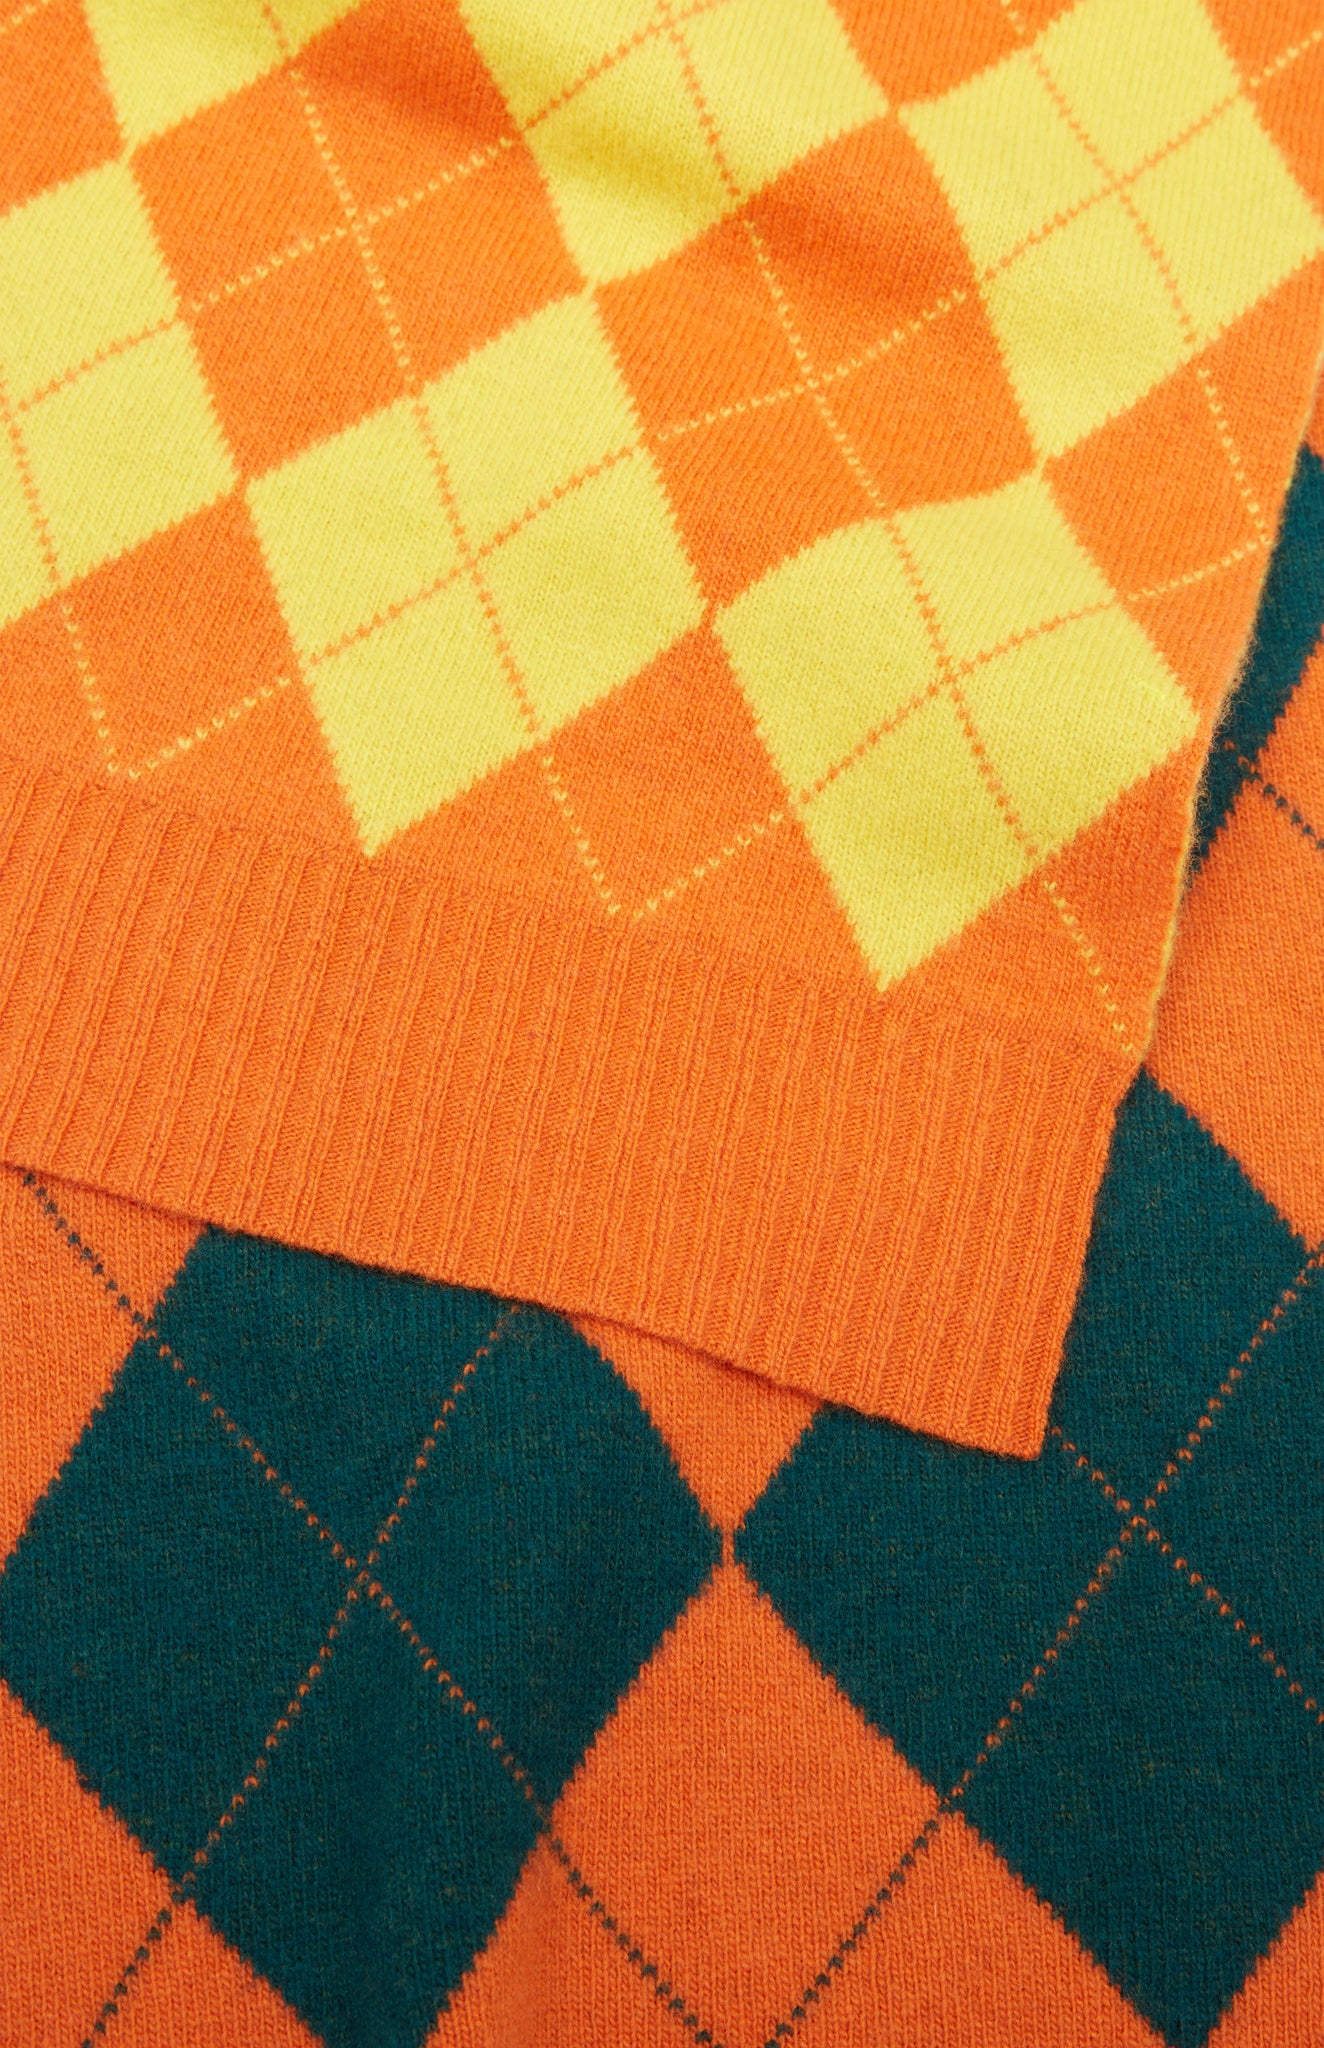 Pringle reissued Patched Argyle Scarf In Green/Orange